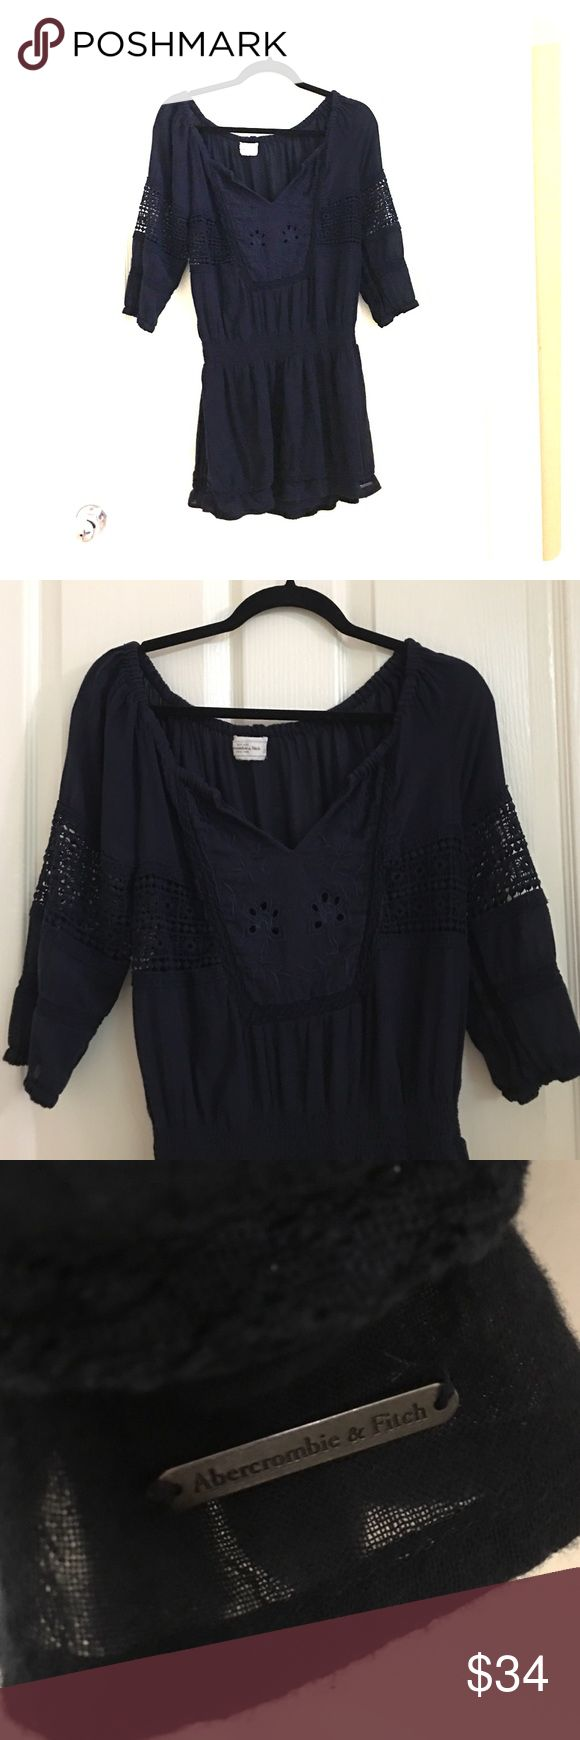 Abercrombie and Fitch Dress Abercrombie and Fitch Dress. Navy blue. Long Sleeve with eyelet hole design on the top. Gathered at the waist. Size S Abercrombie & Fitch Dresses Long Sleeve